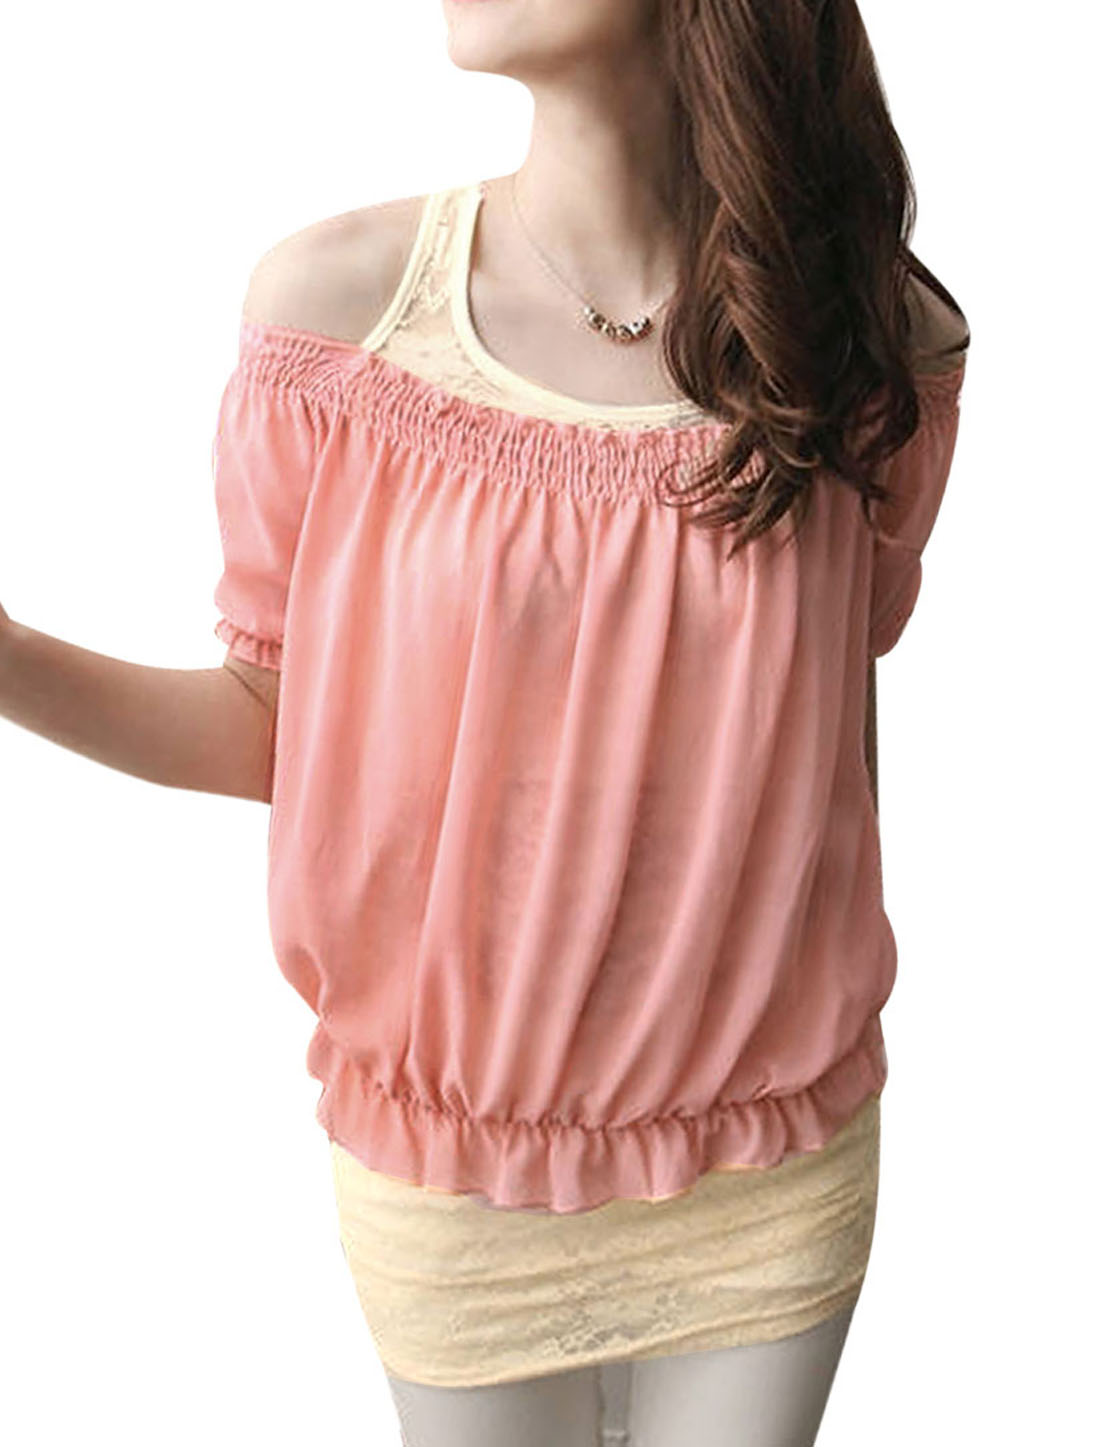 Lady Scoop Neck Semi-sheer Tank Top w Off Shoulder Loose Blouse Salmon Pink XS